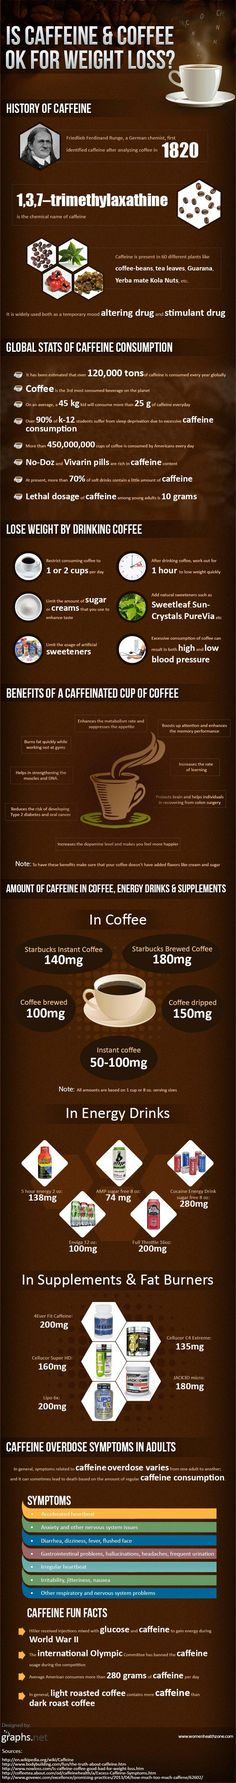 #INFOgraphic > Caffeine on Weight Loss:   > http://infographicsmania.com/caffeine-on-weight-loss/?utm_source=Pinterest&utm_medium=INFOGRAPHICSMANIA&utm_campaign=SNAP